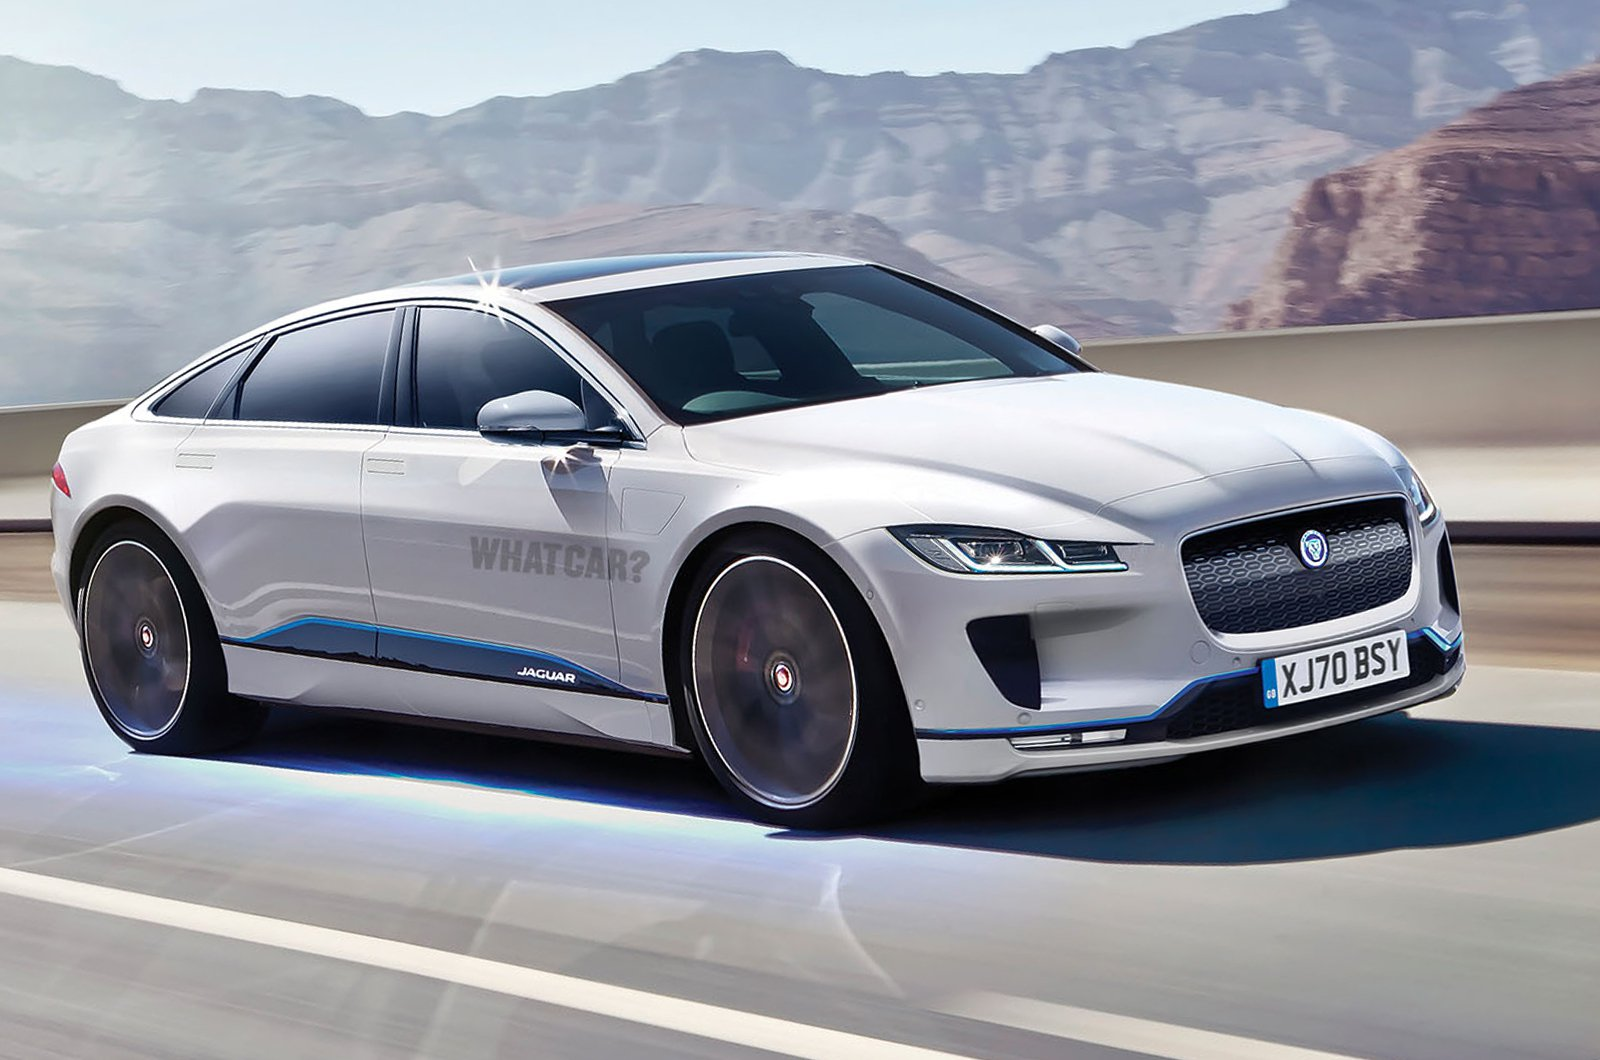 2021 jaguar xj coupe specs and review release date 2021